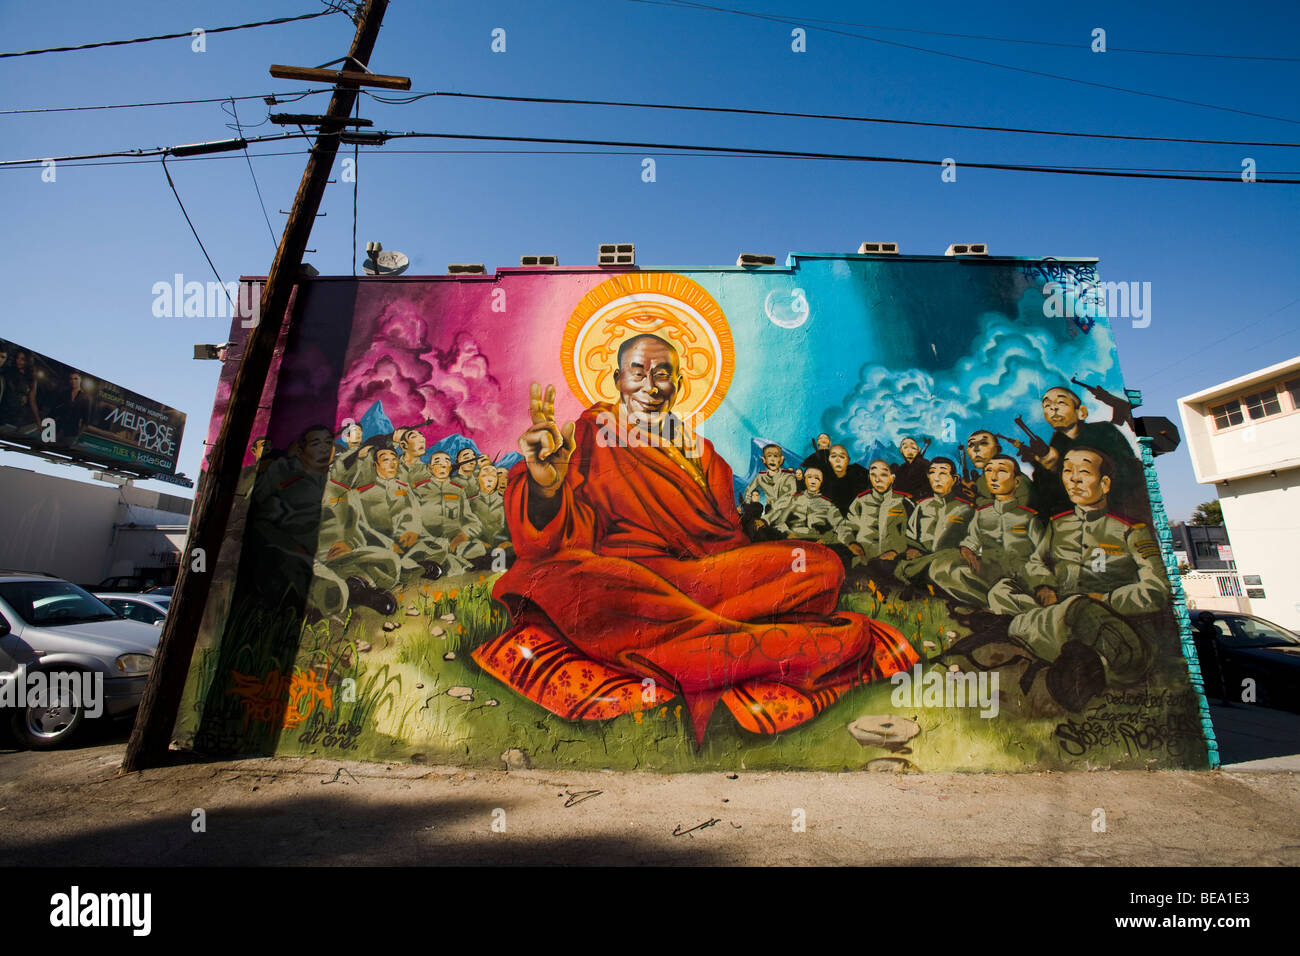 Dalai Lama Mural, an alley near Melrose Ave, West Hollywood, Los Angeles County, California, United States of America - Stock Image